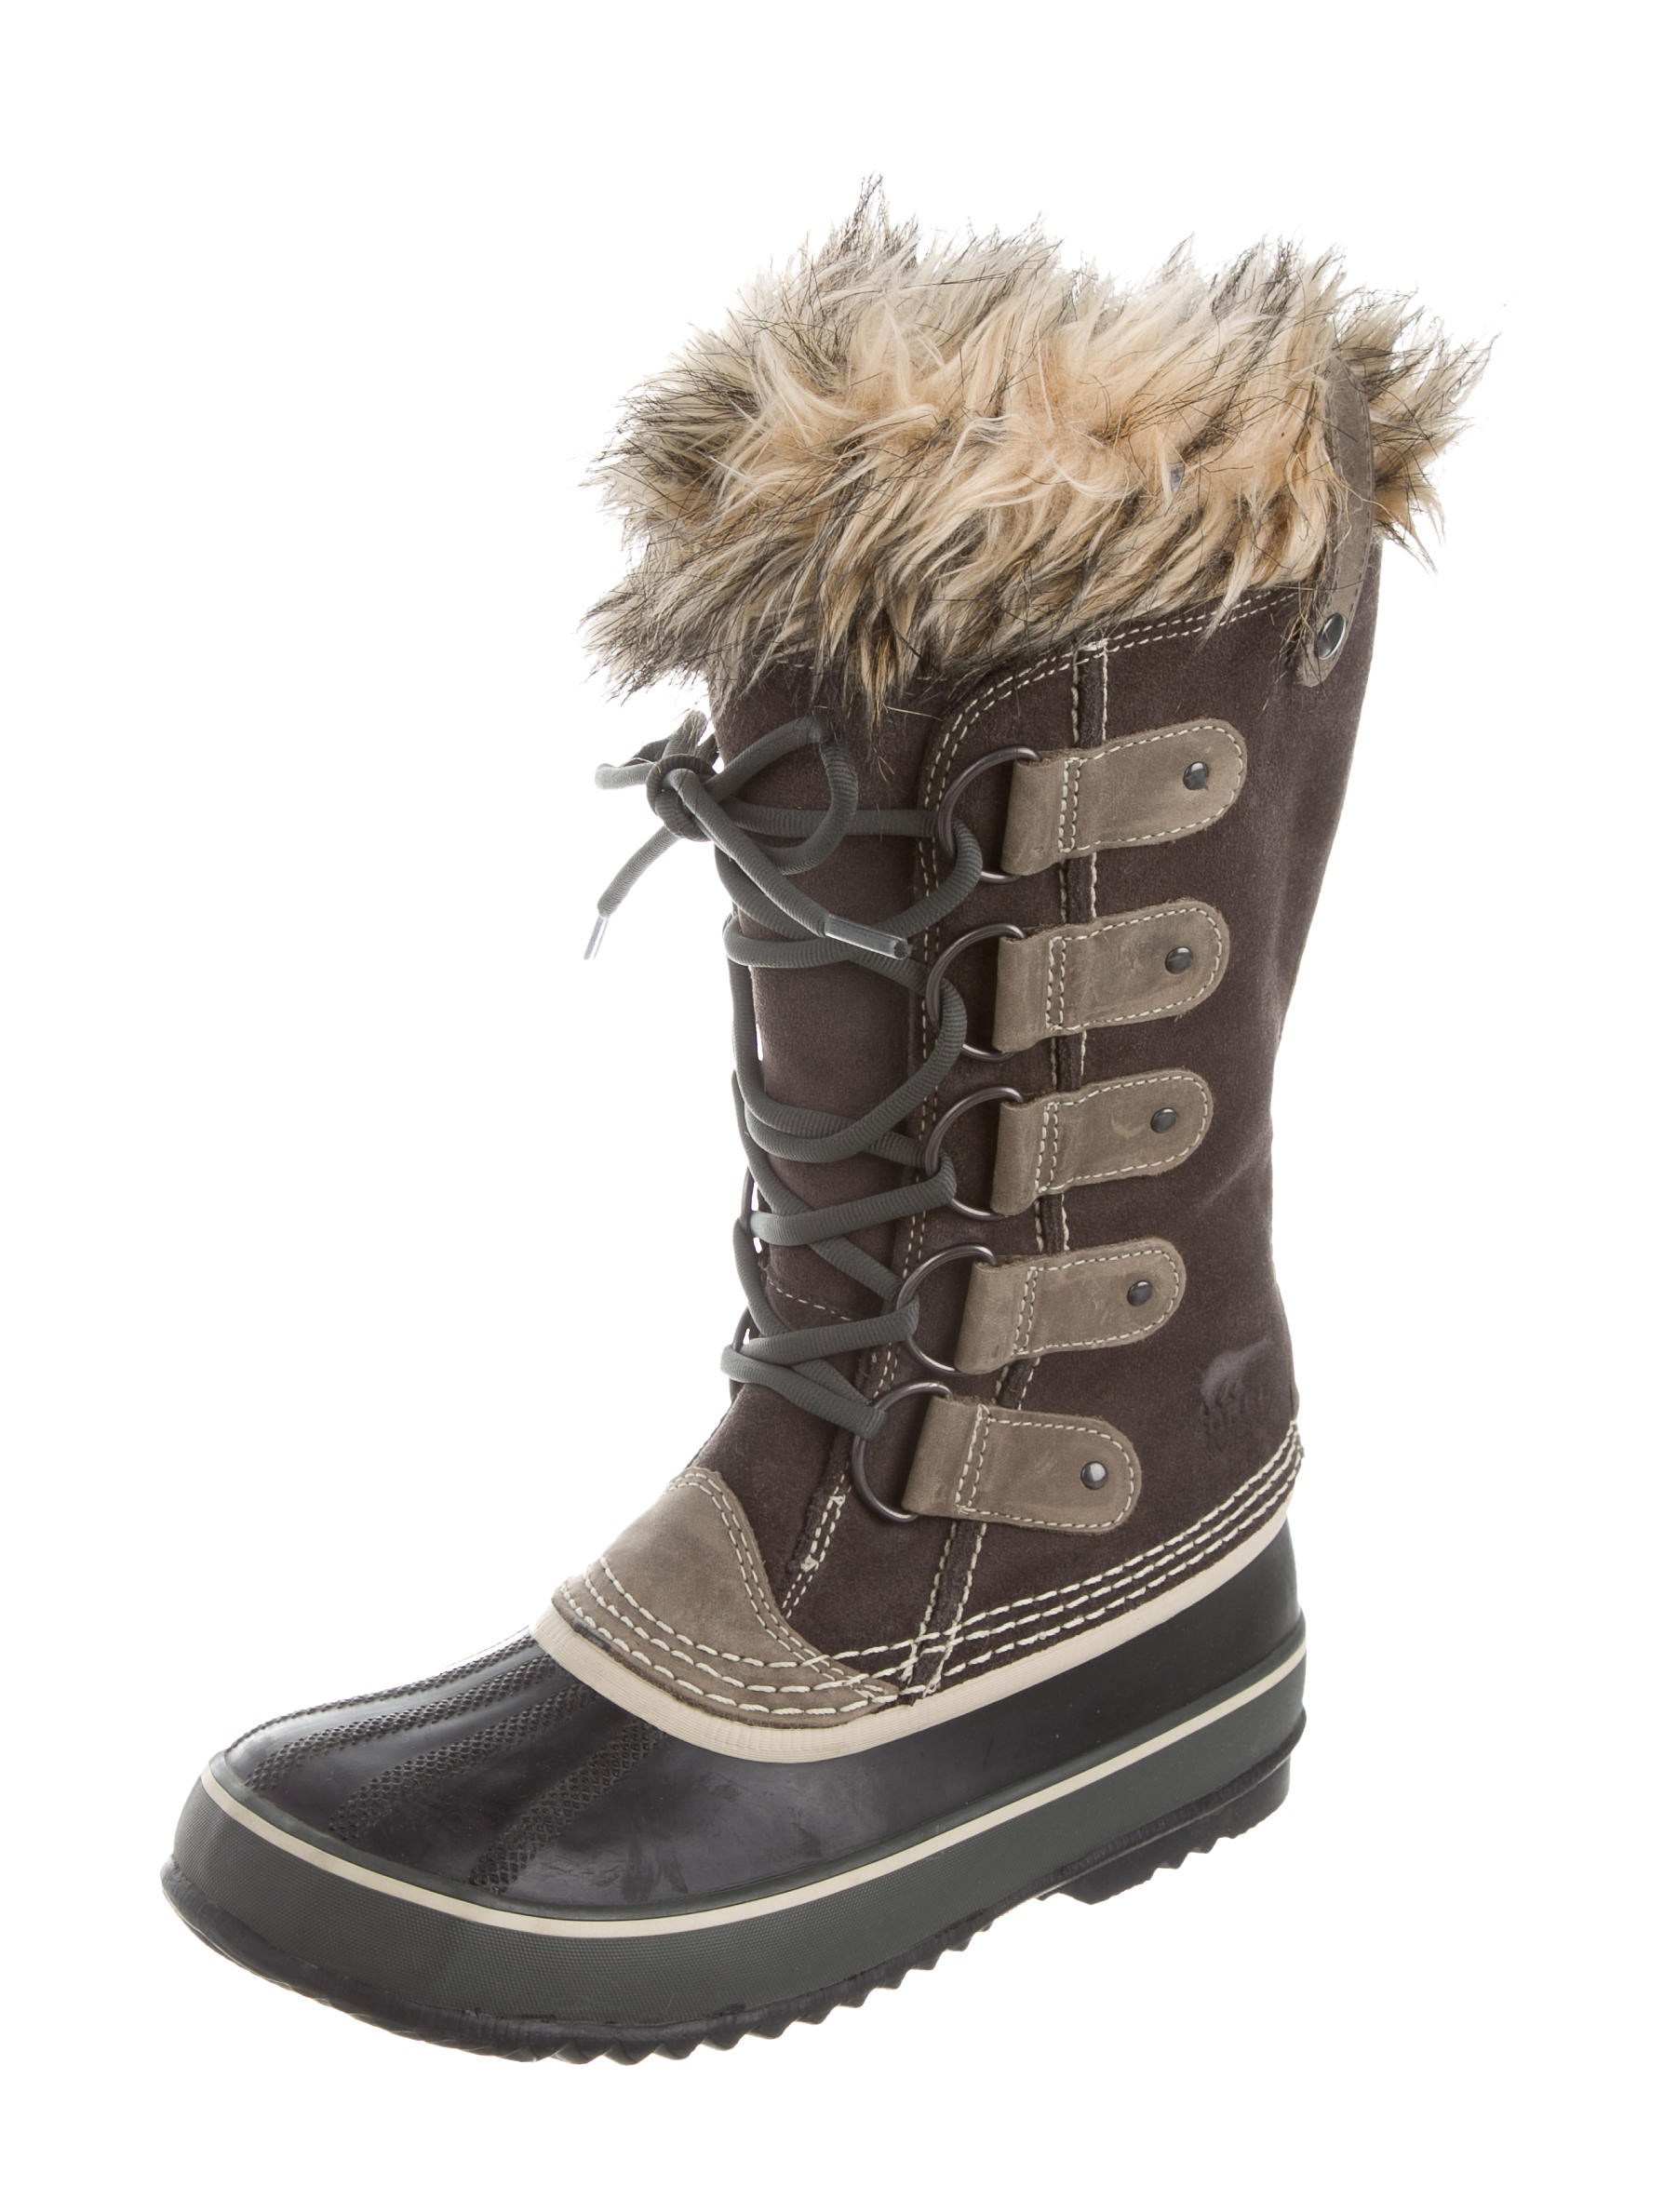 sorel suede mid calf snow boots shoes wsorl20138 the